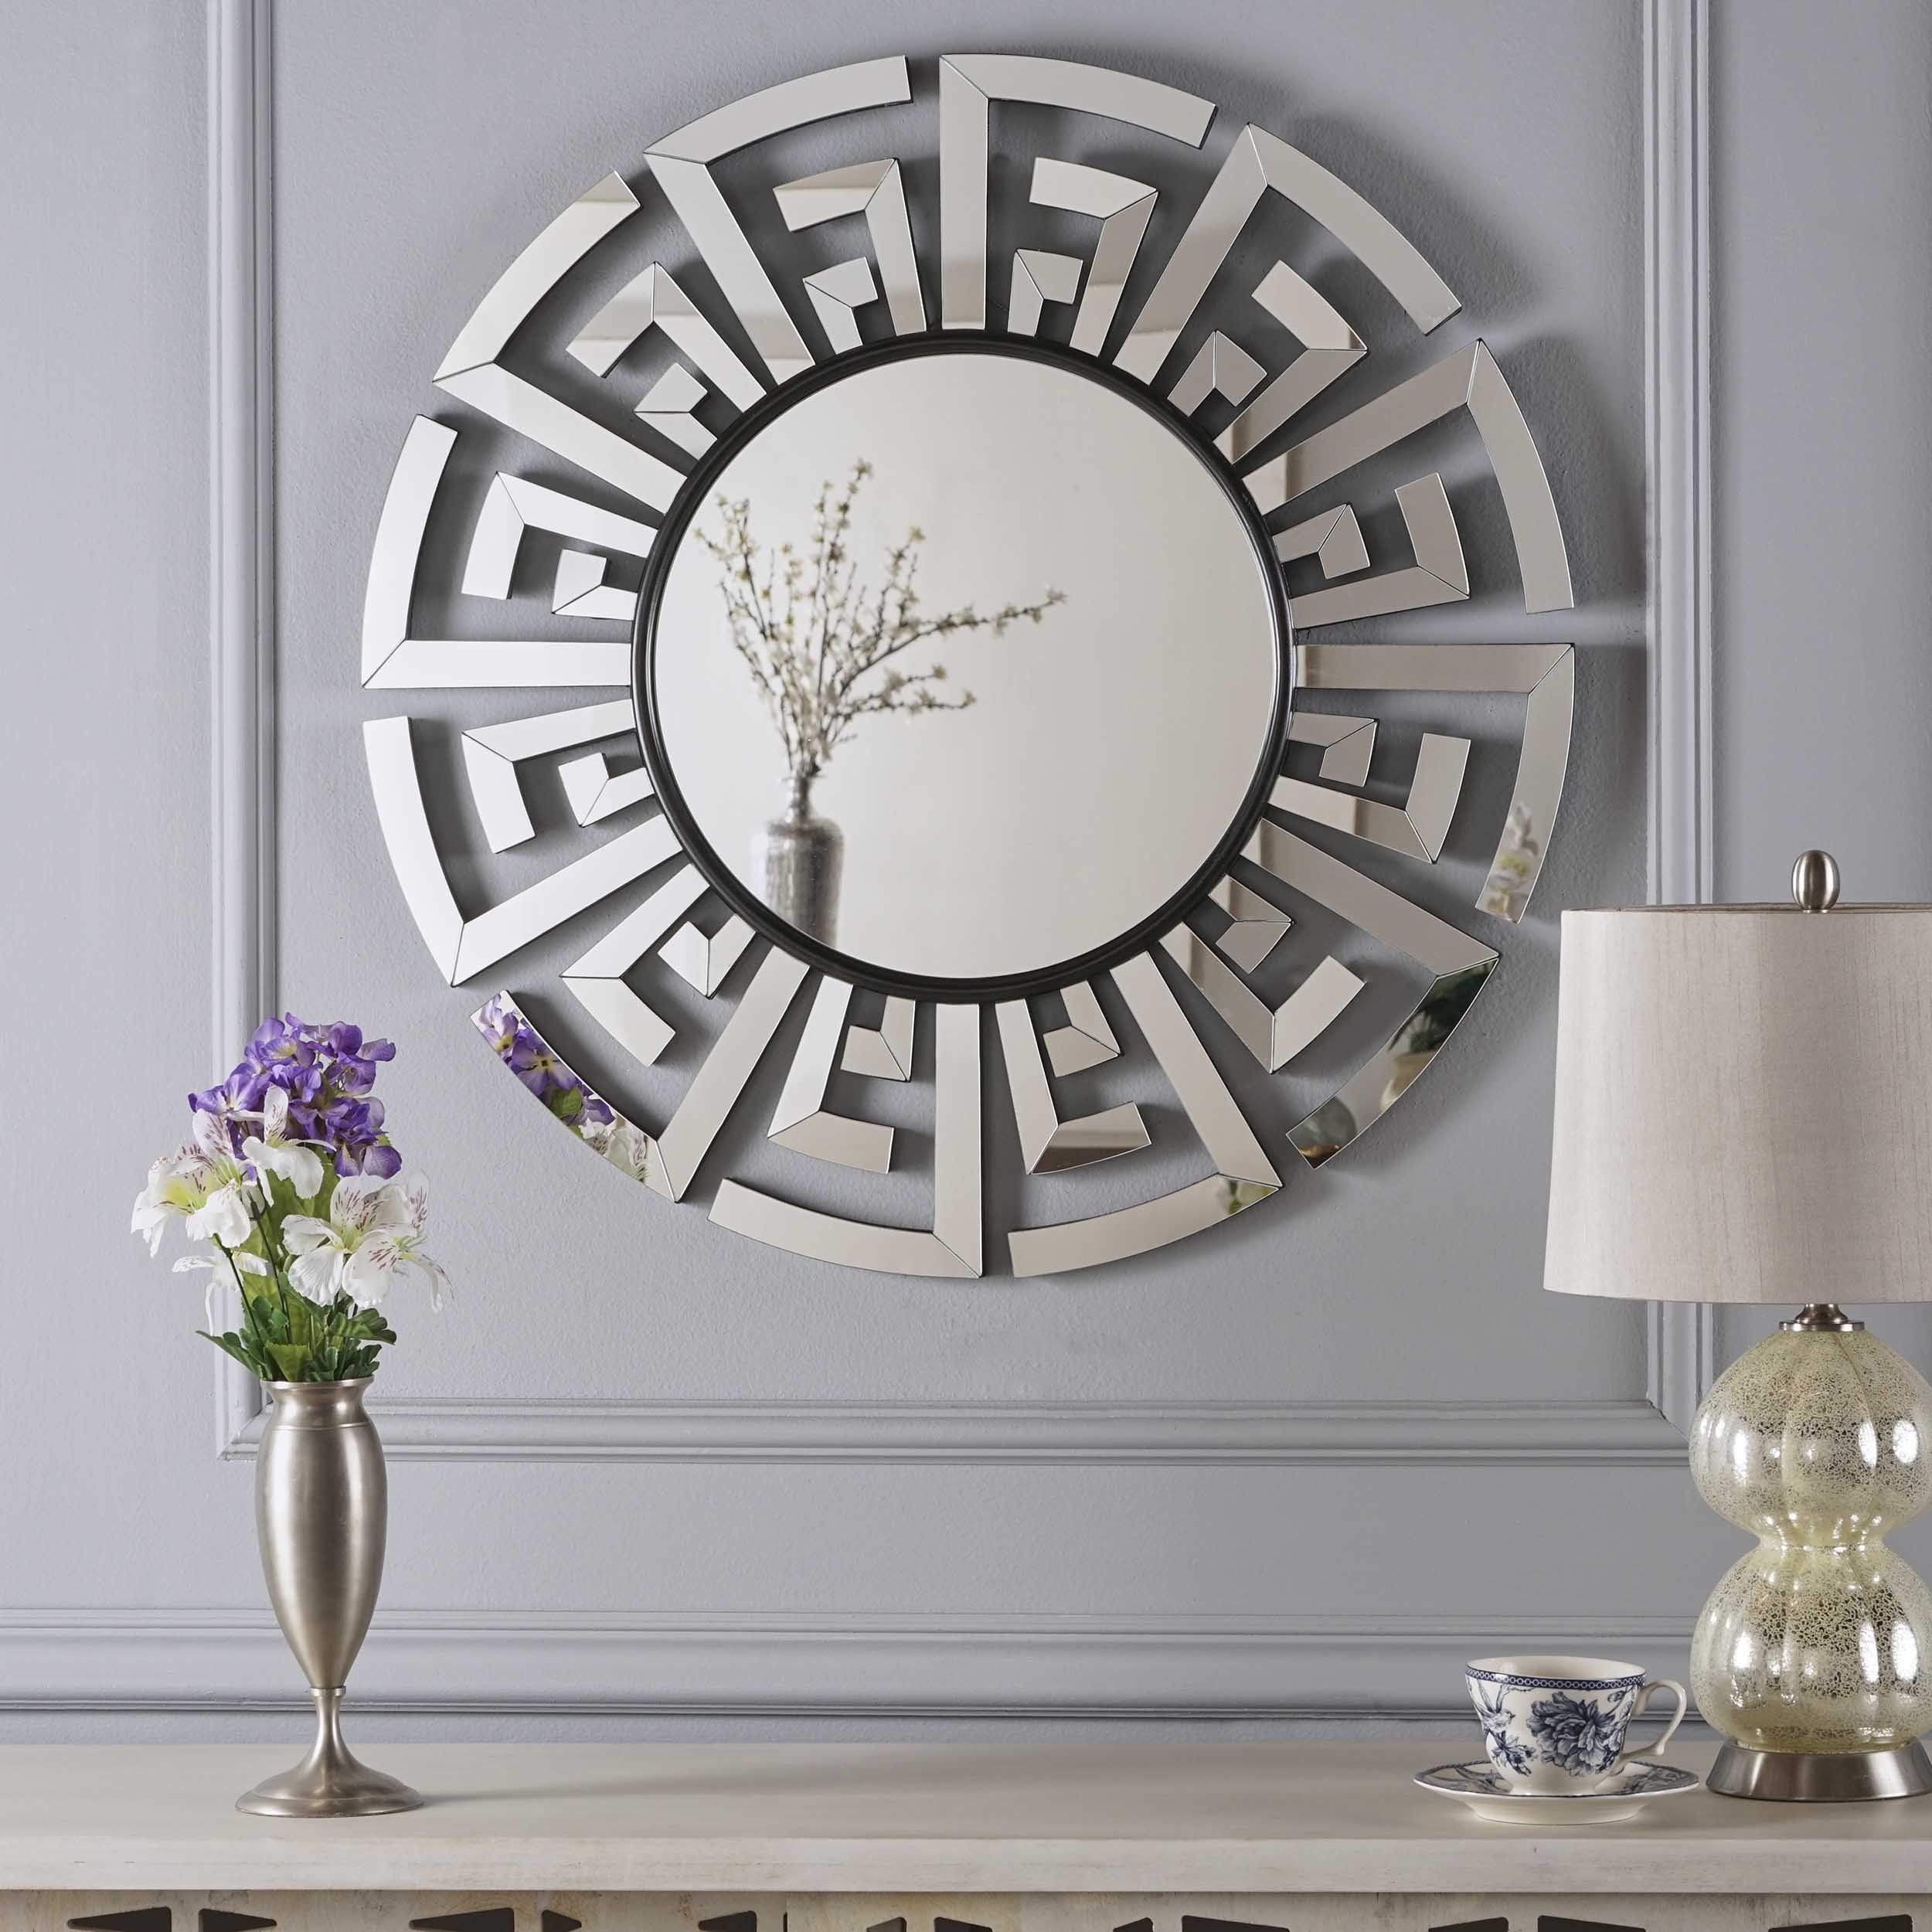 Far East Chinese Inspired Wall Mirror | Products | Round Intended For Tata Openwork Round Wall Mirrors (Image 6 of 20)